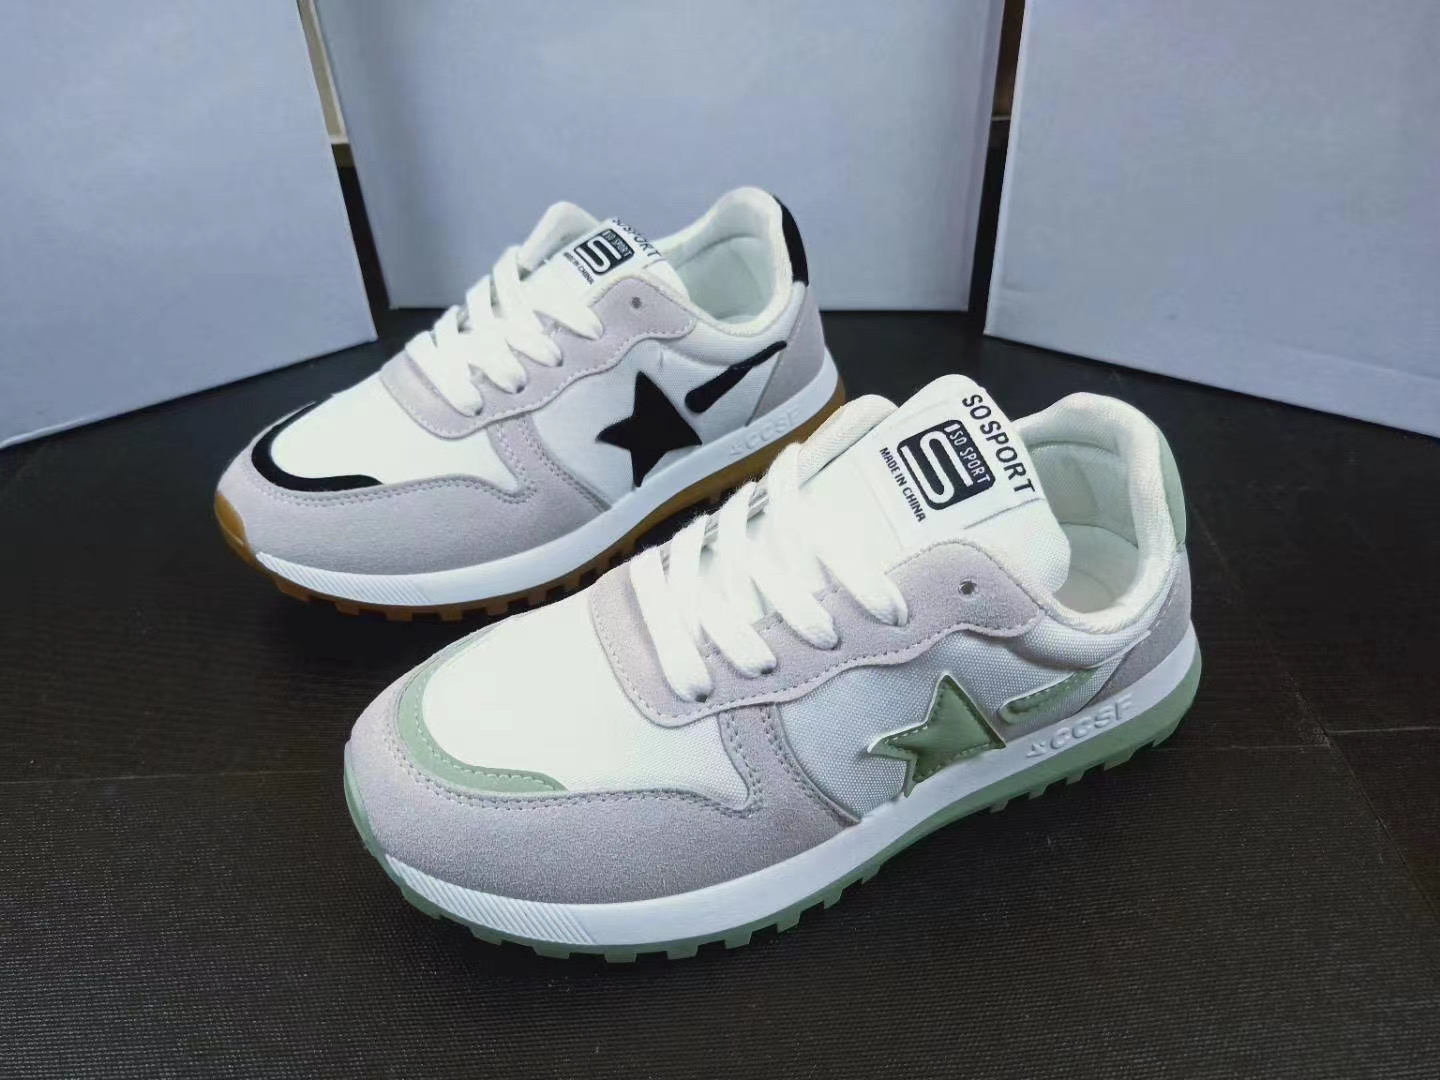 Hot sale New design woman casual sports shoes W0824-5 2020 fashion